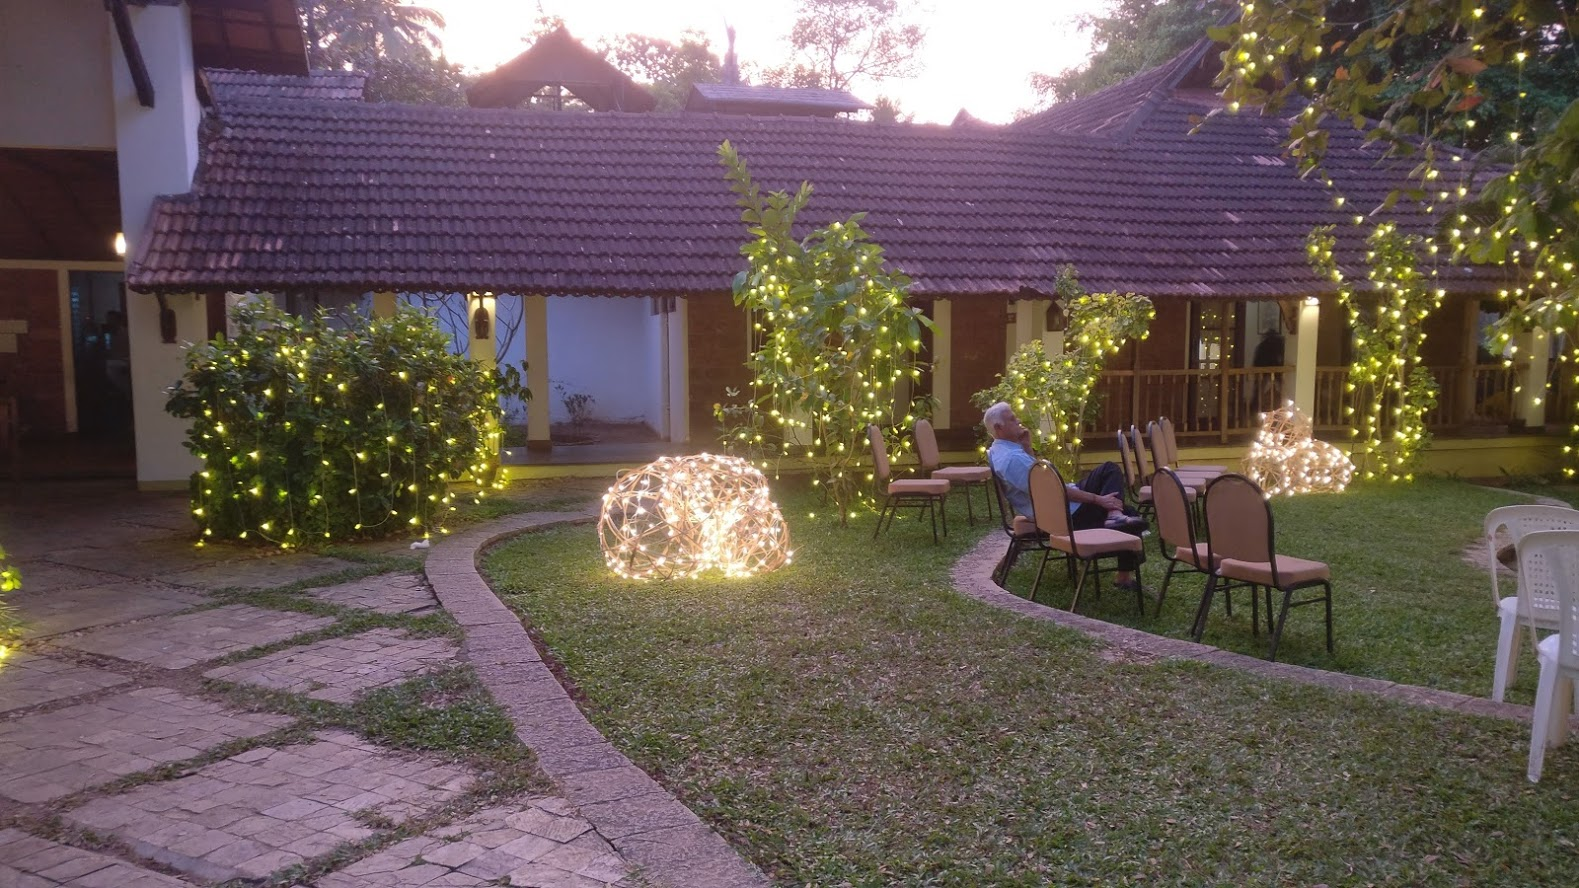 punnamada resort lighting decor.jpg